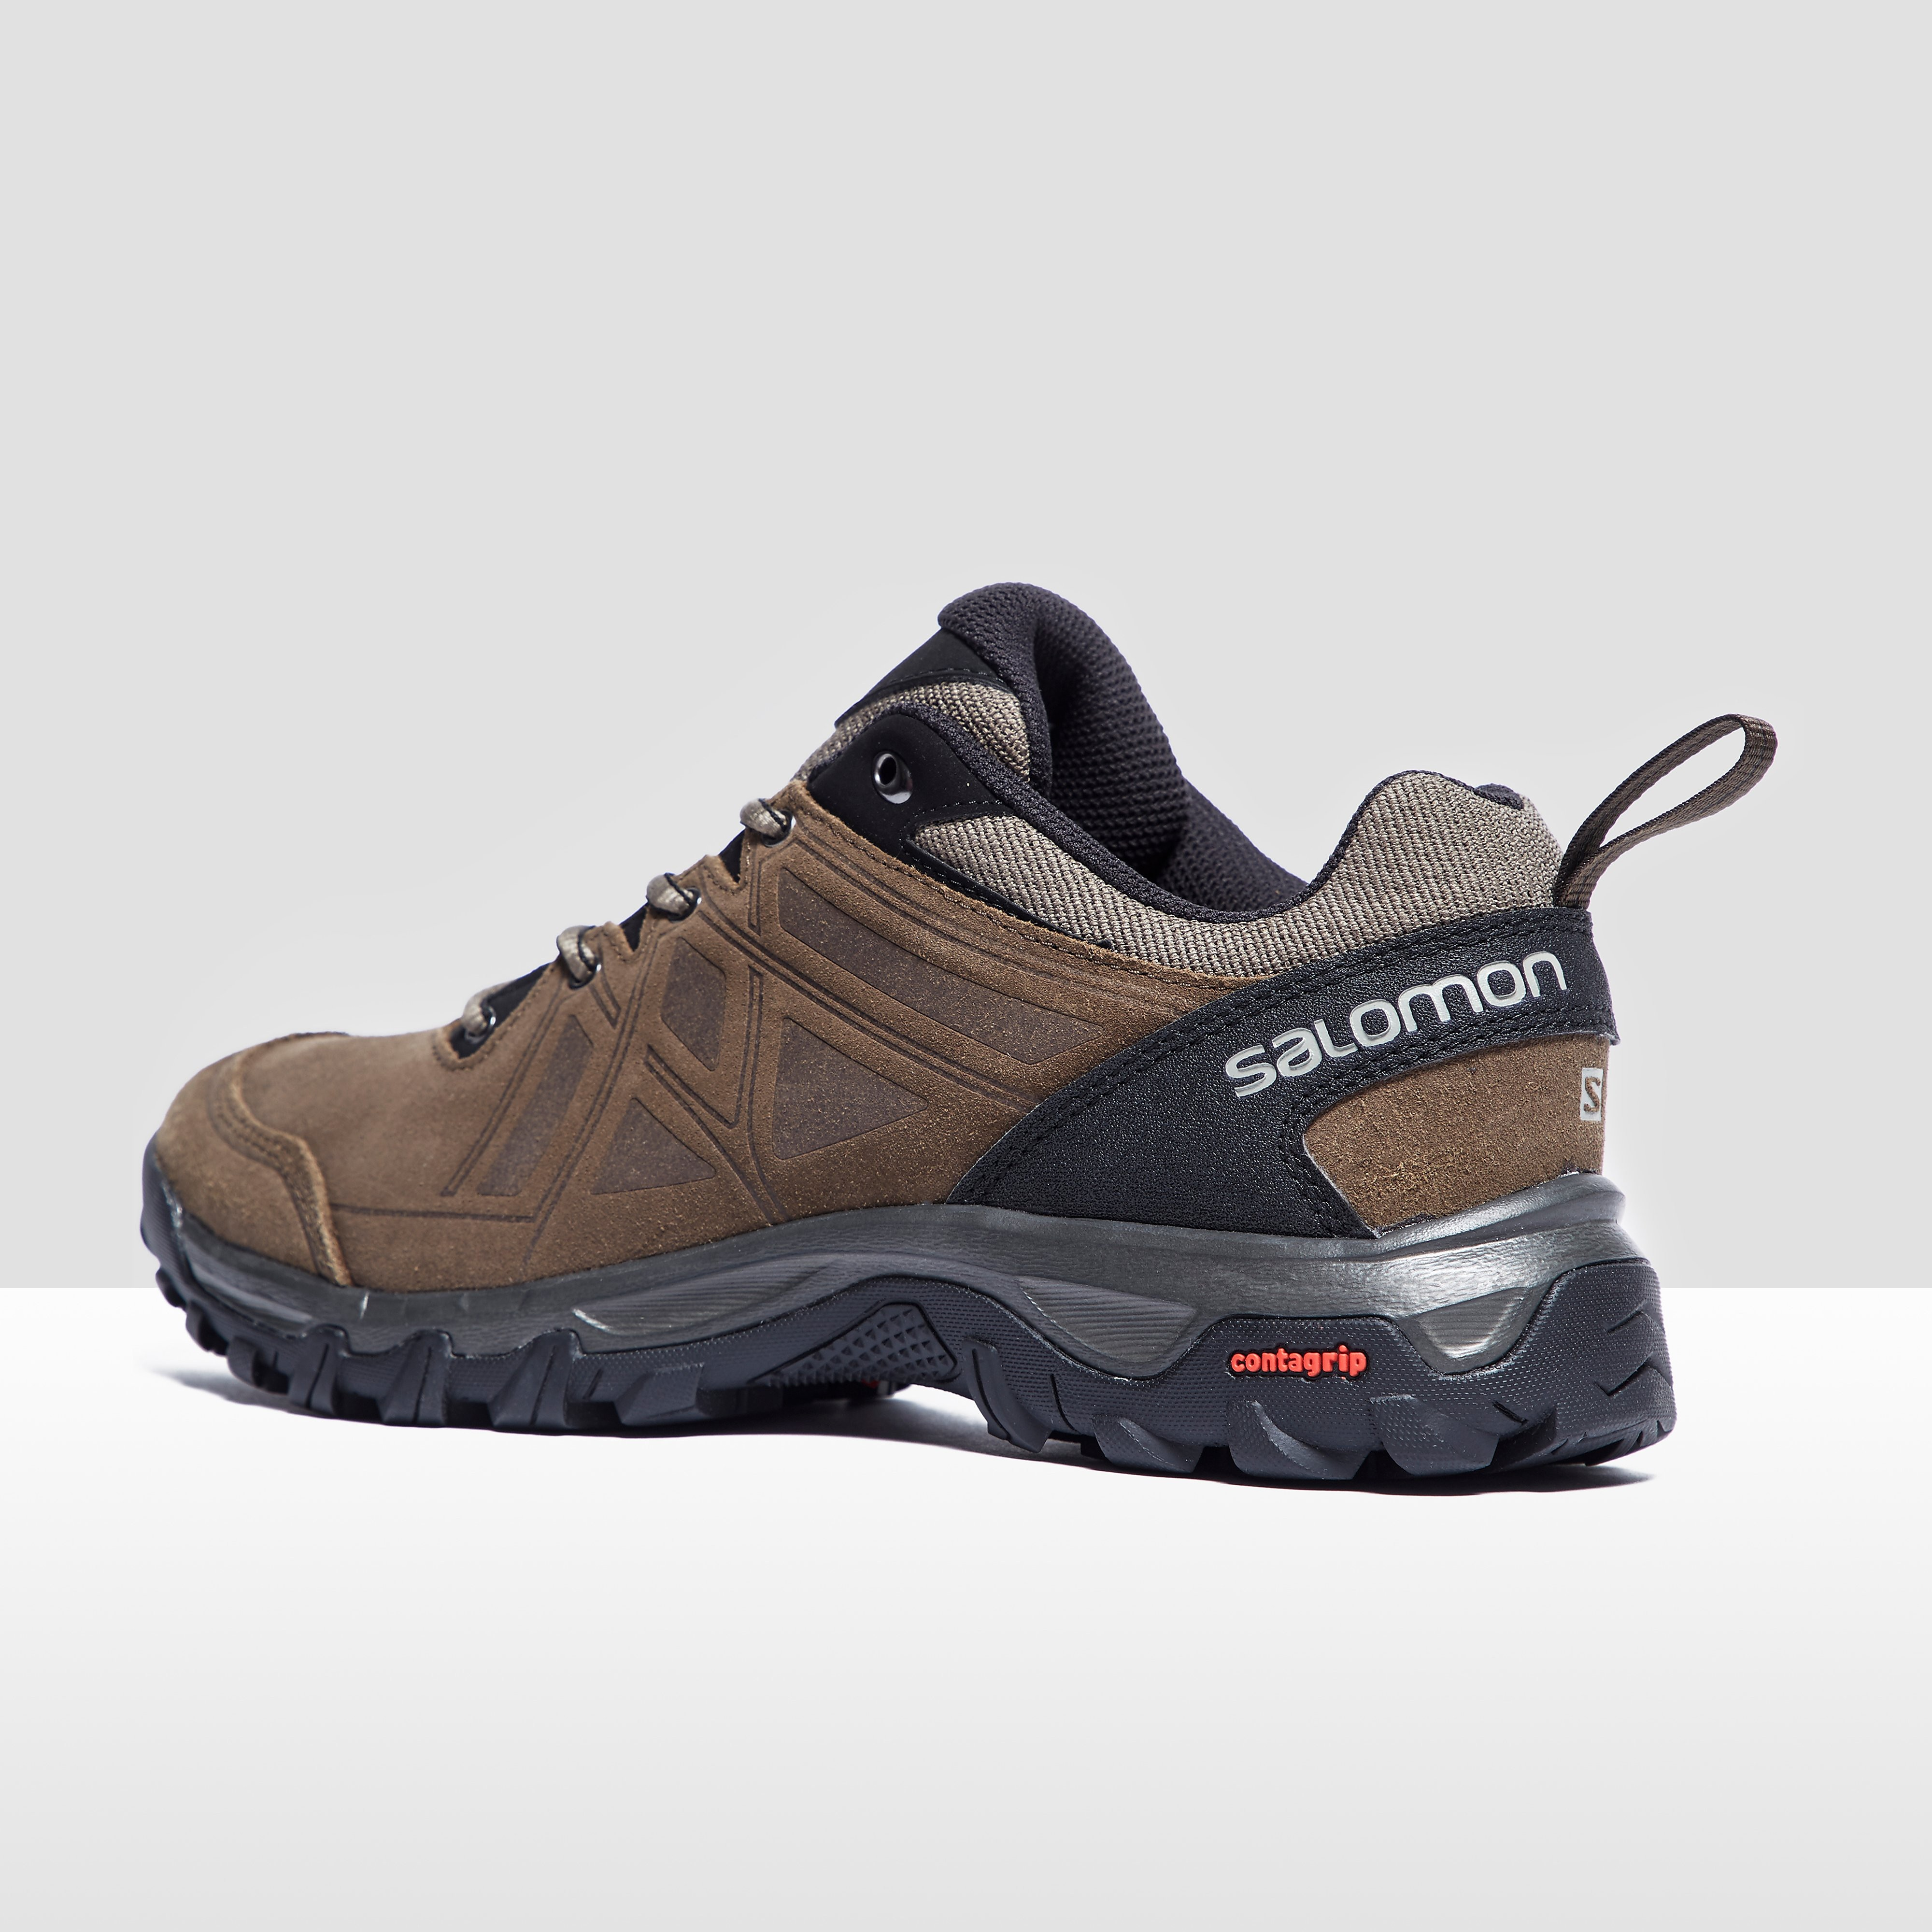 Salomon Evasion 2 LTR Men's Walking Shoes